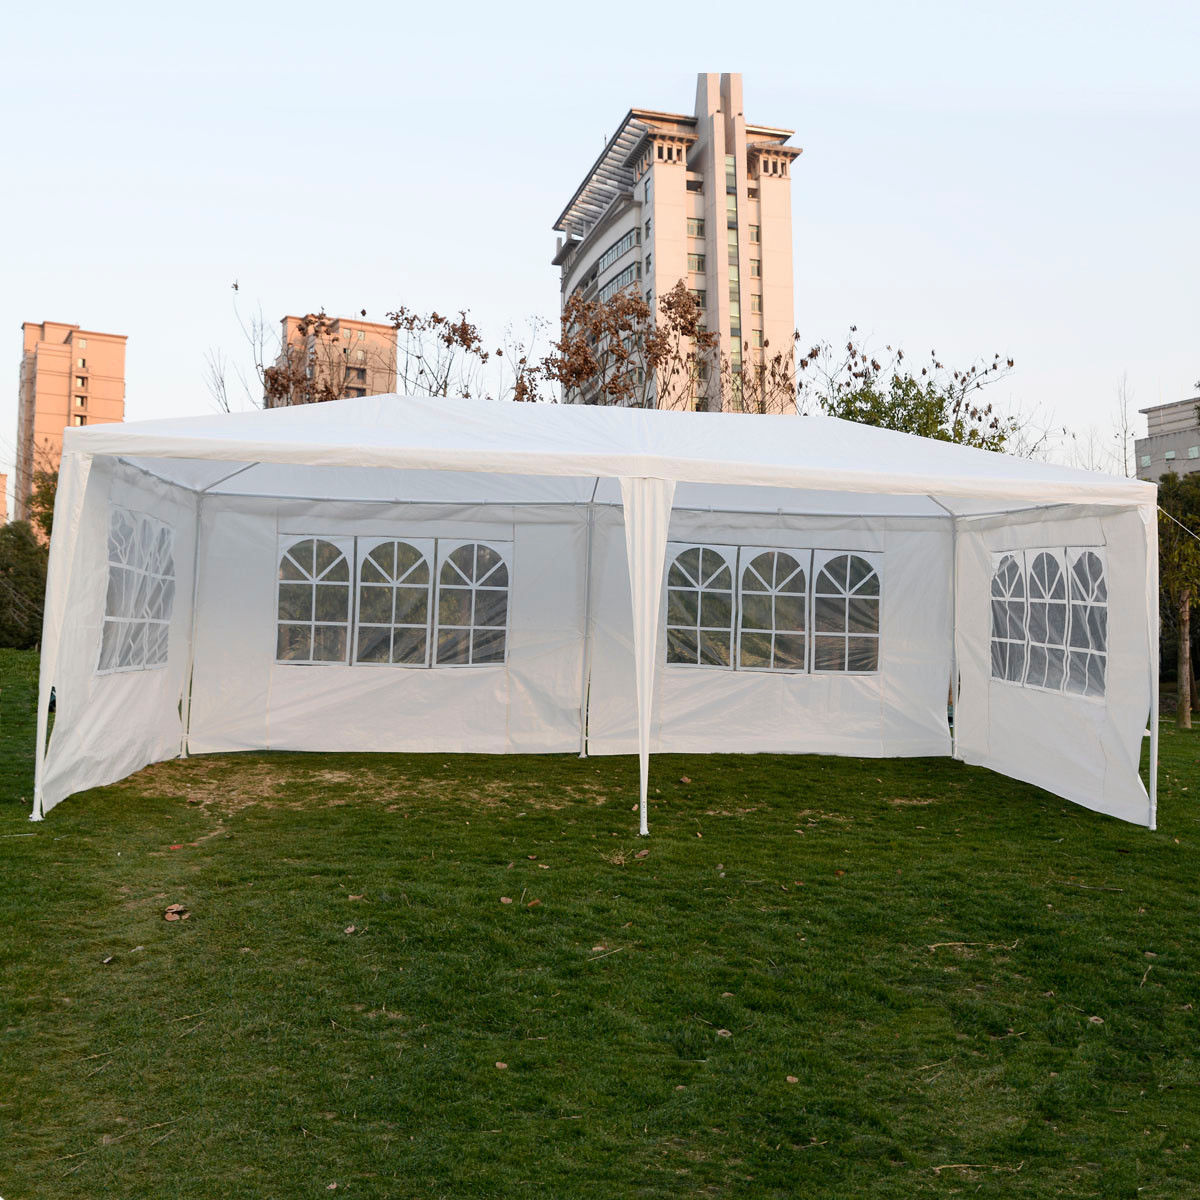 10 x 20 white party tent canopy gazebo w 4 sidewalls. Black Bedroom Furniture Sets. Home Design Ideas